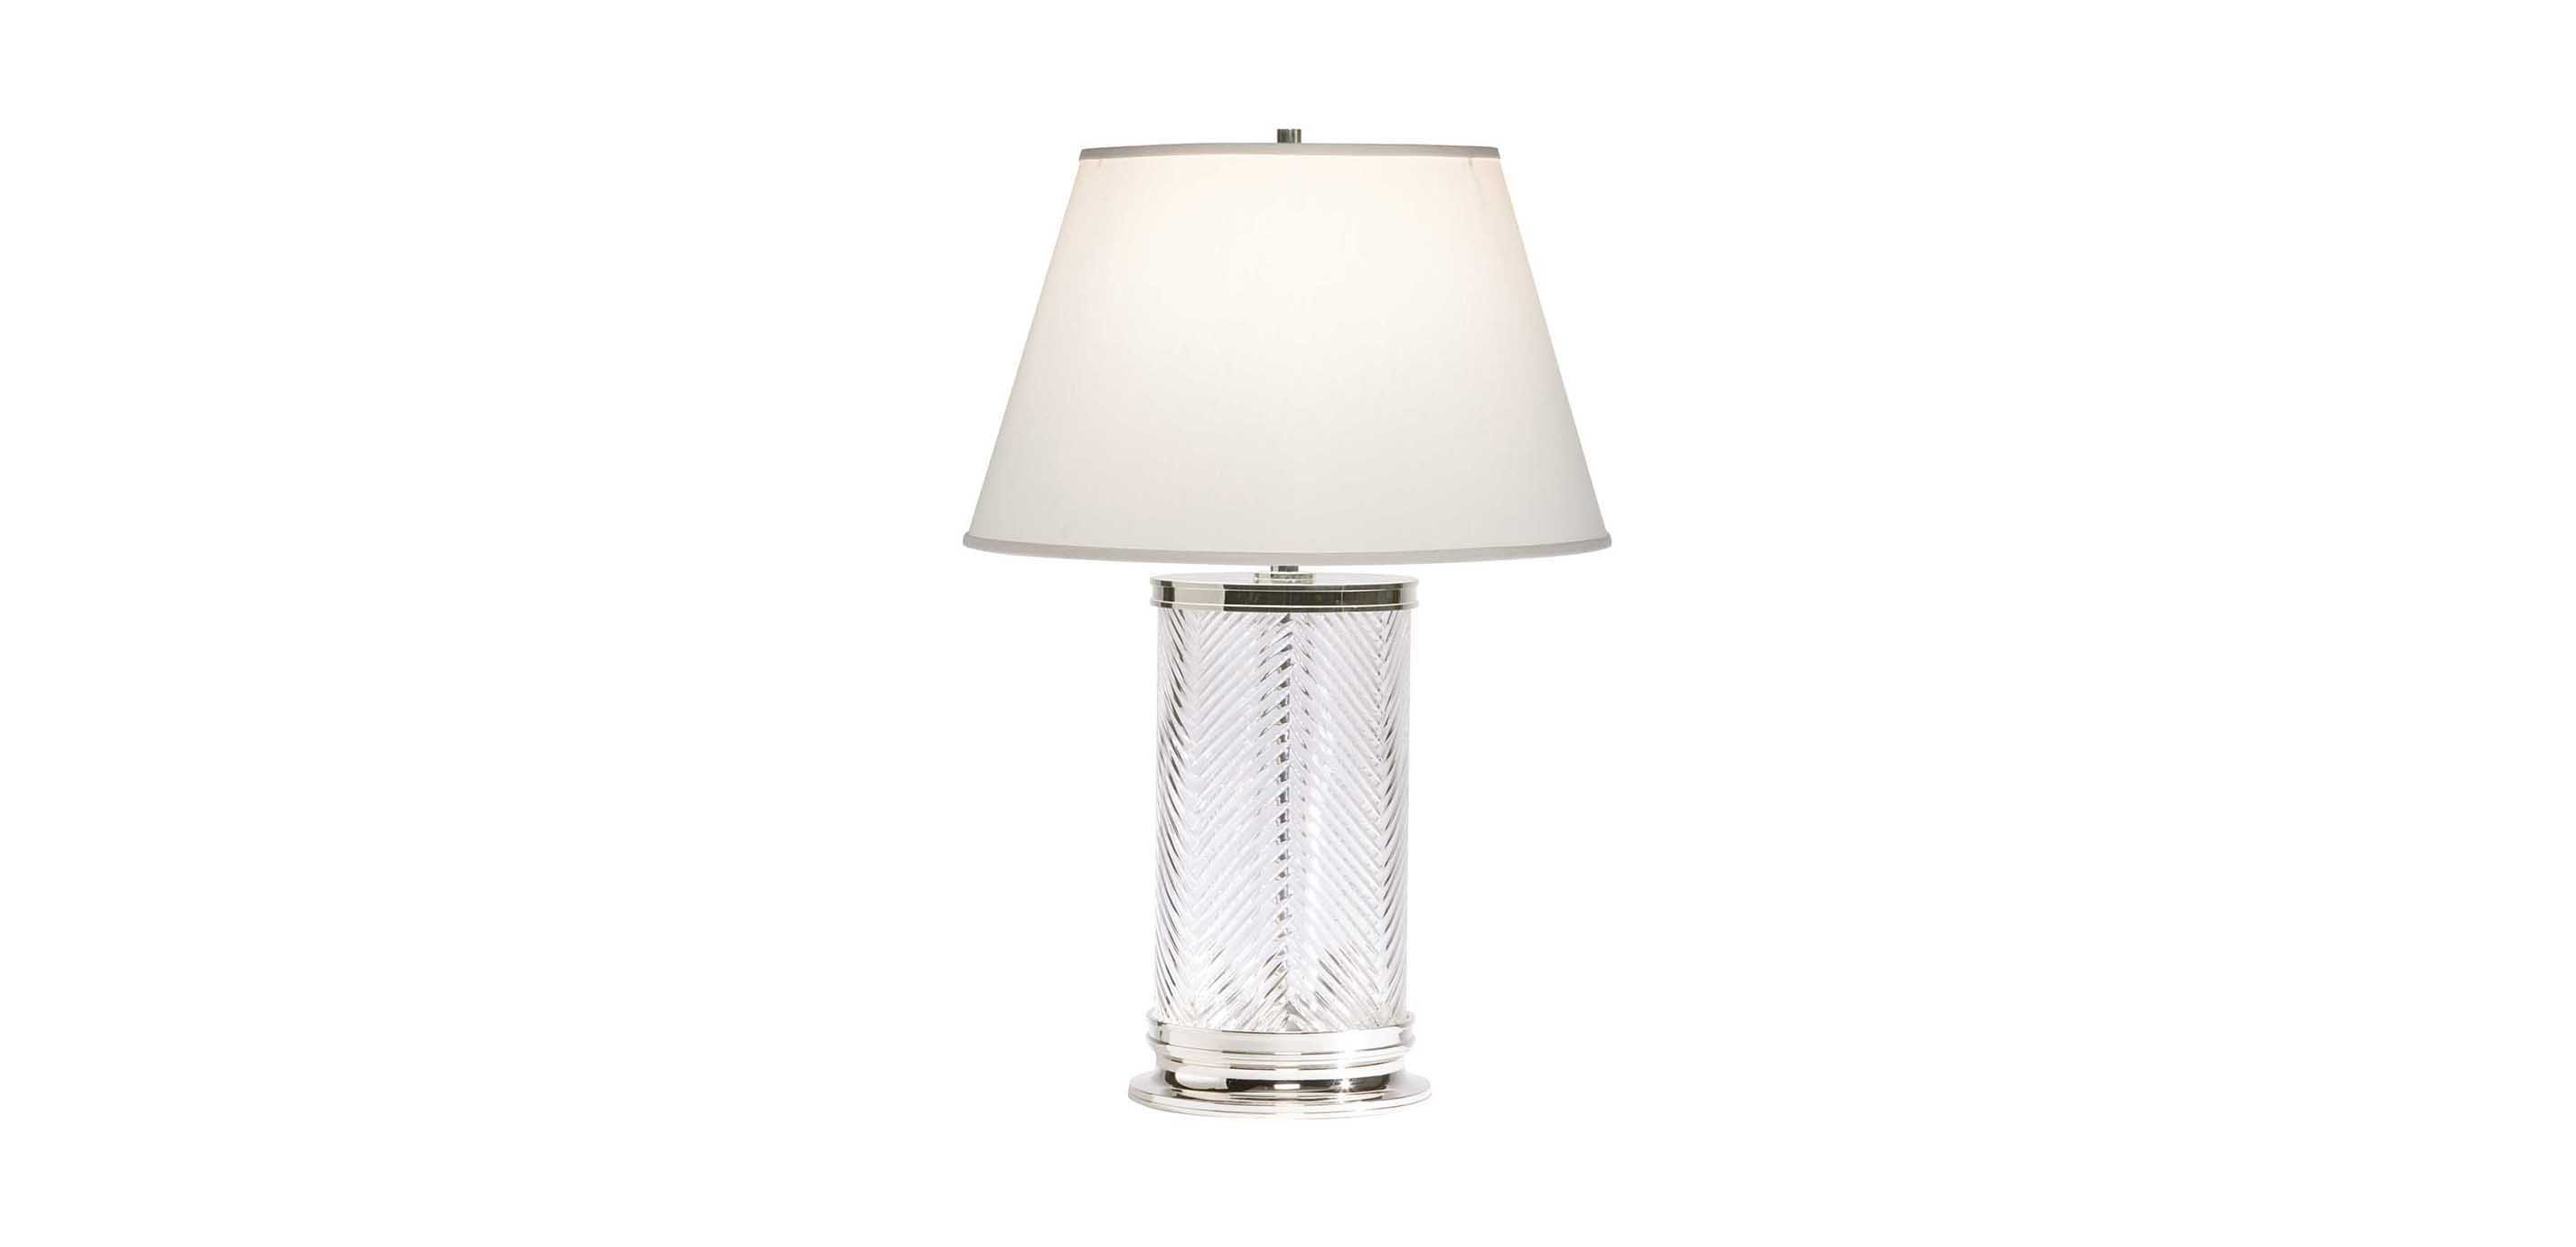 Herringbone glass table lamp table lamps ethan allen images herringbone glass table lamp largegray mozeypictures Gallery